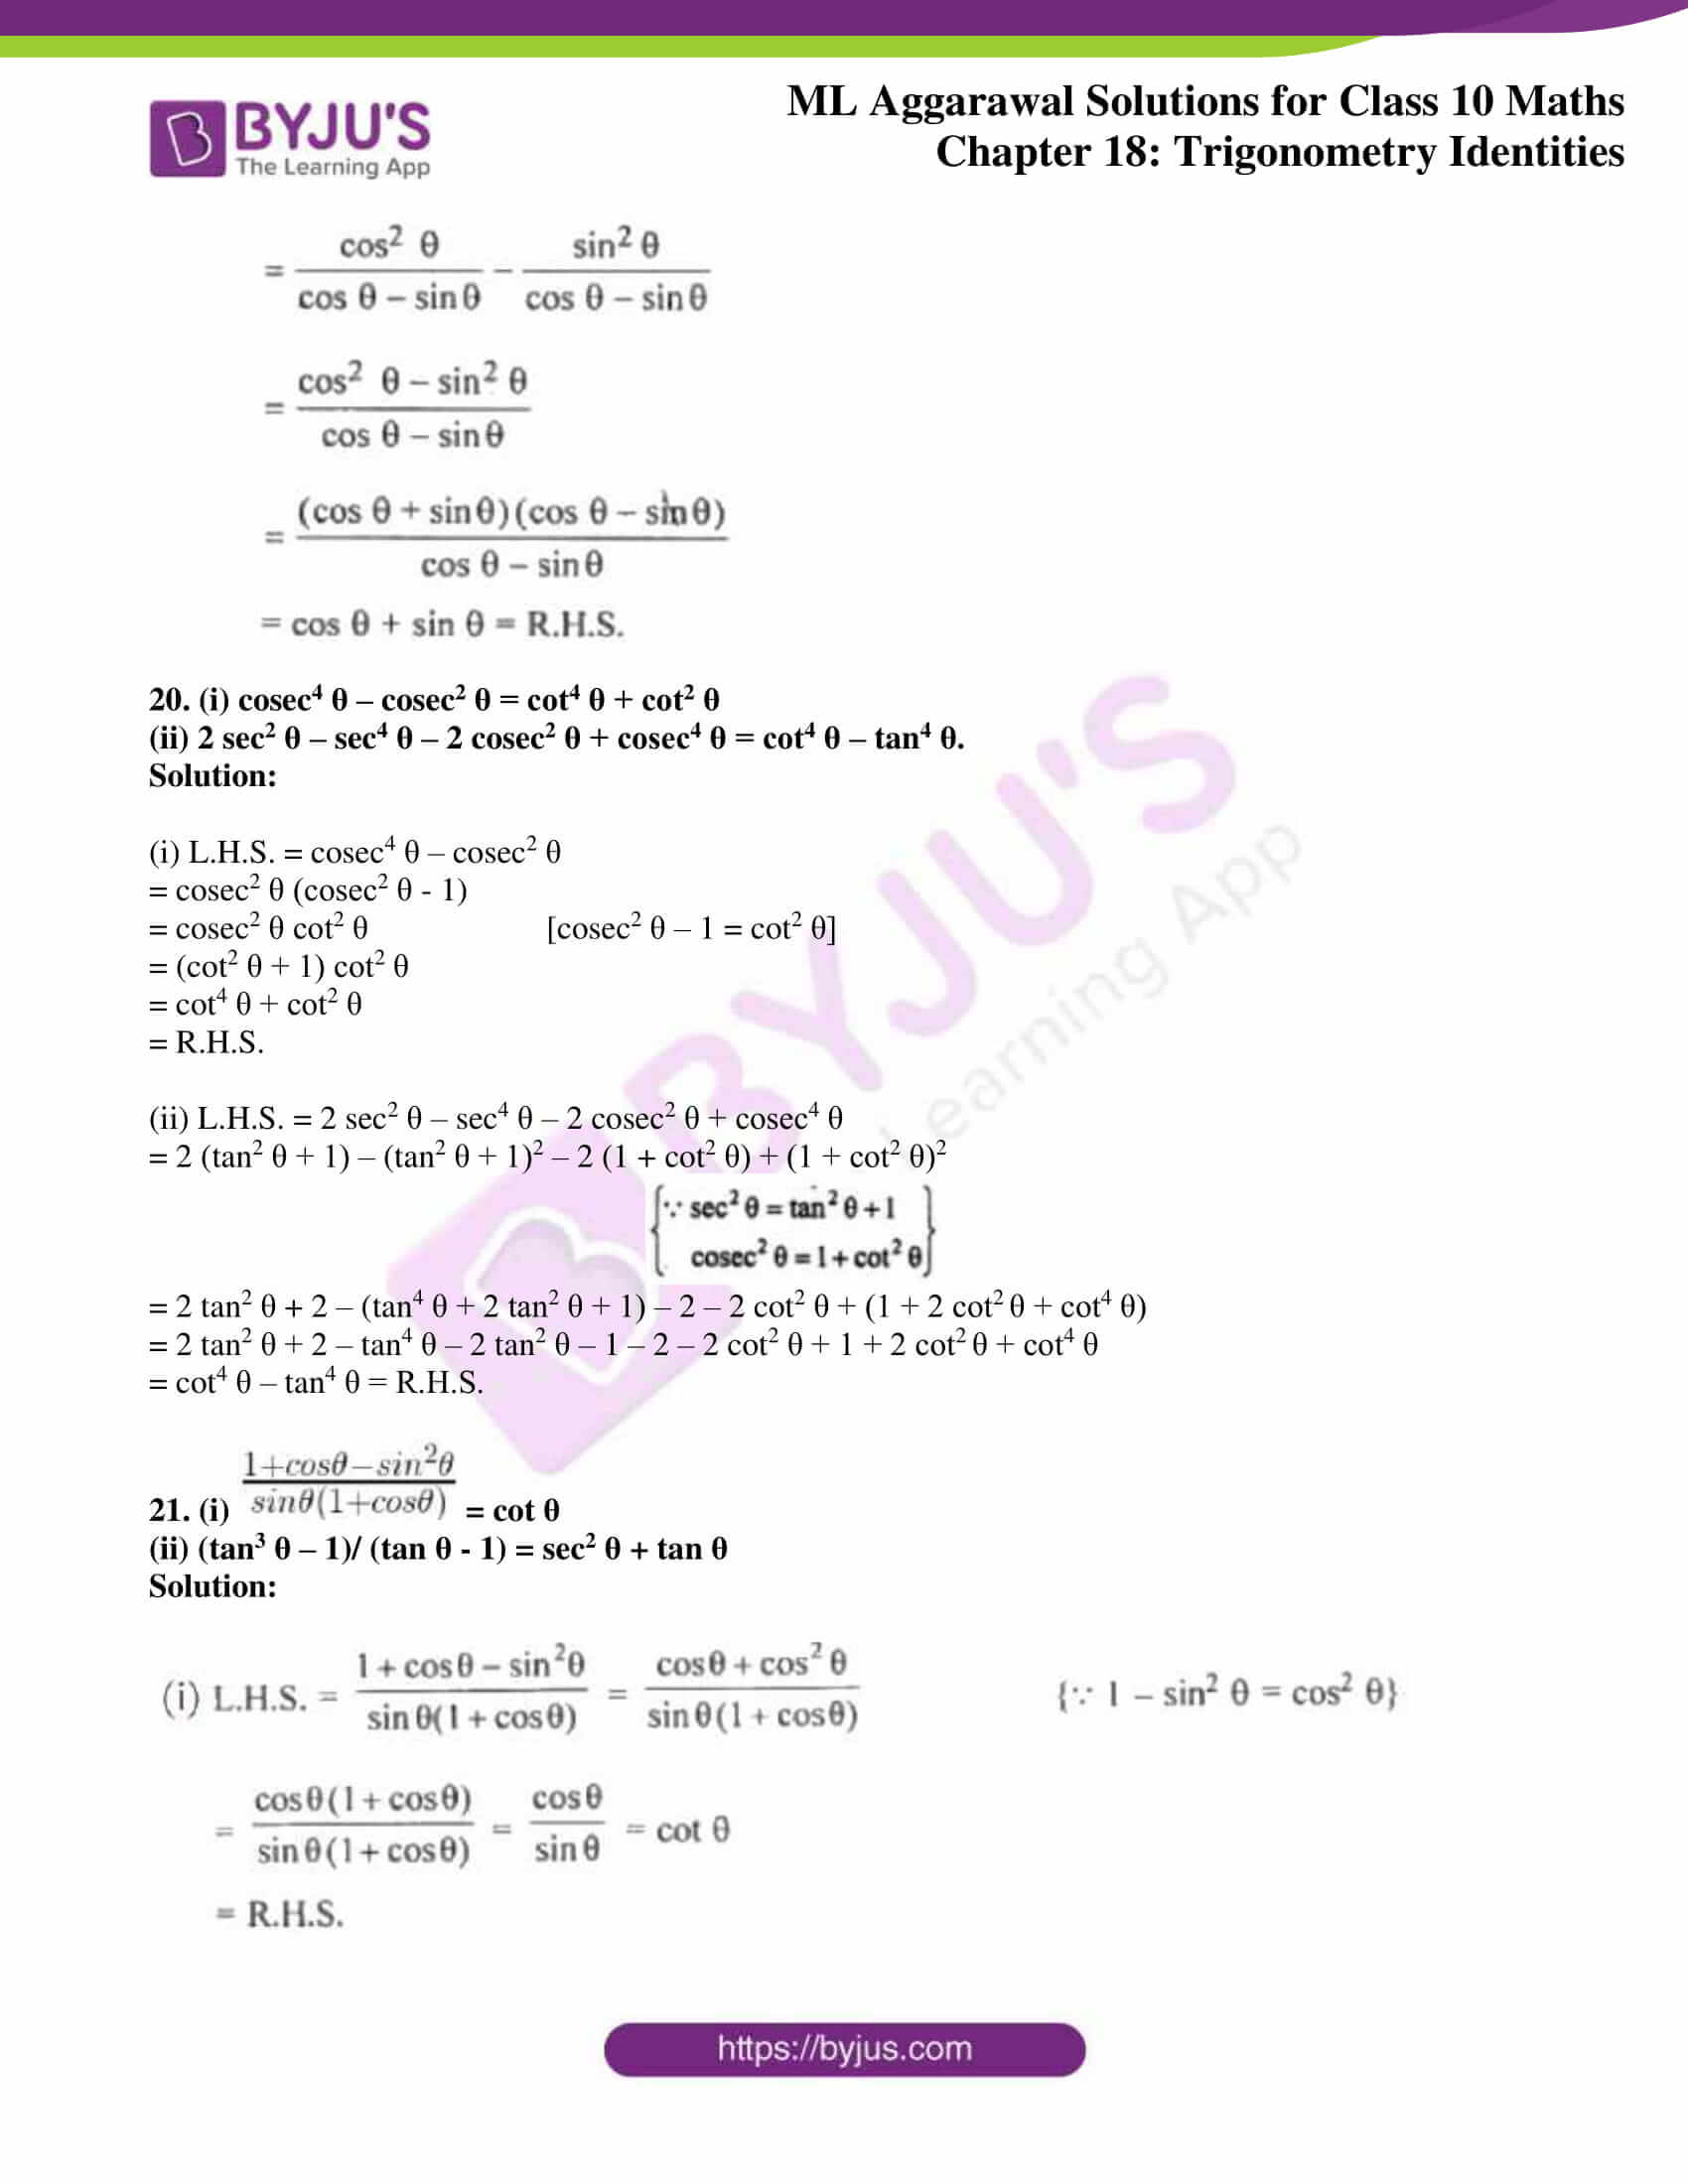 ml aggarwal solutions for class 10 maths chapter 18 14